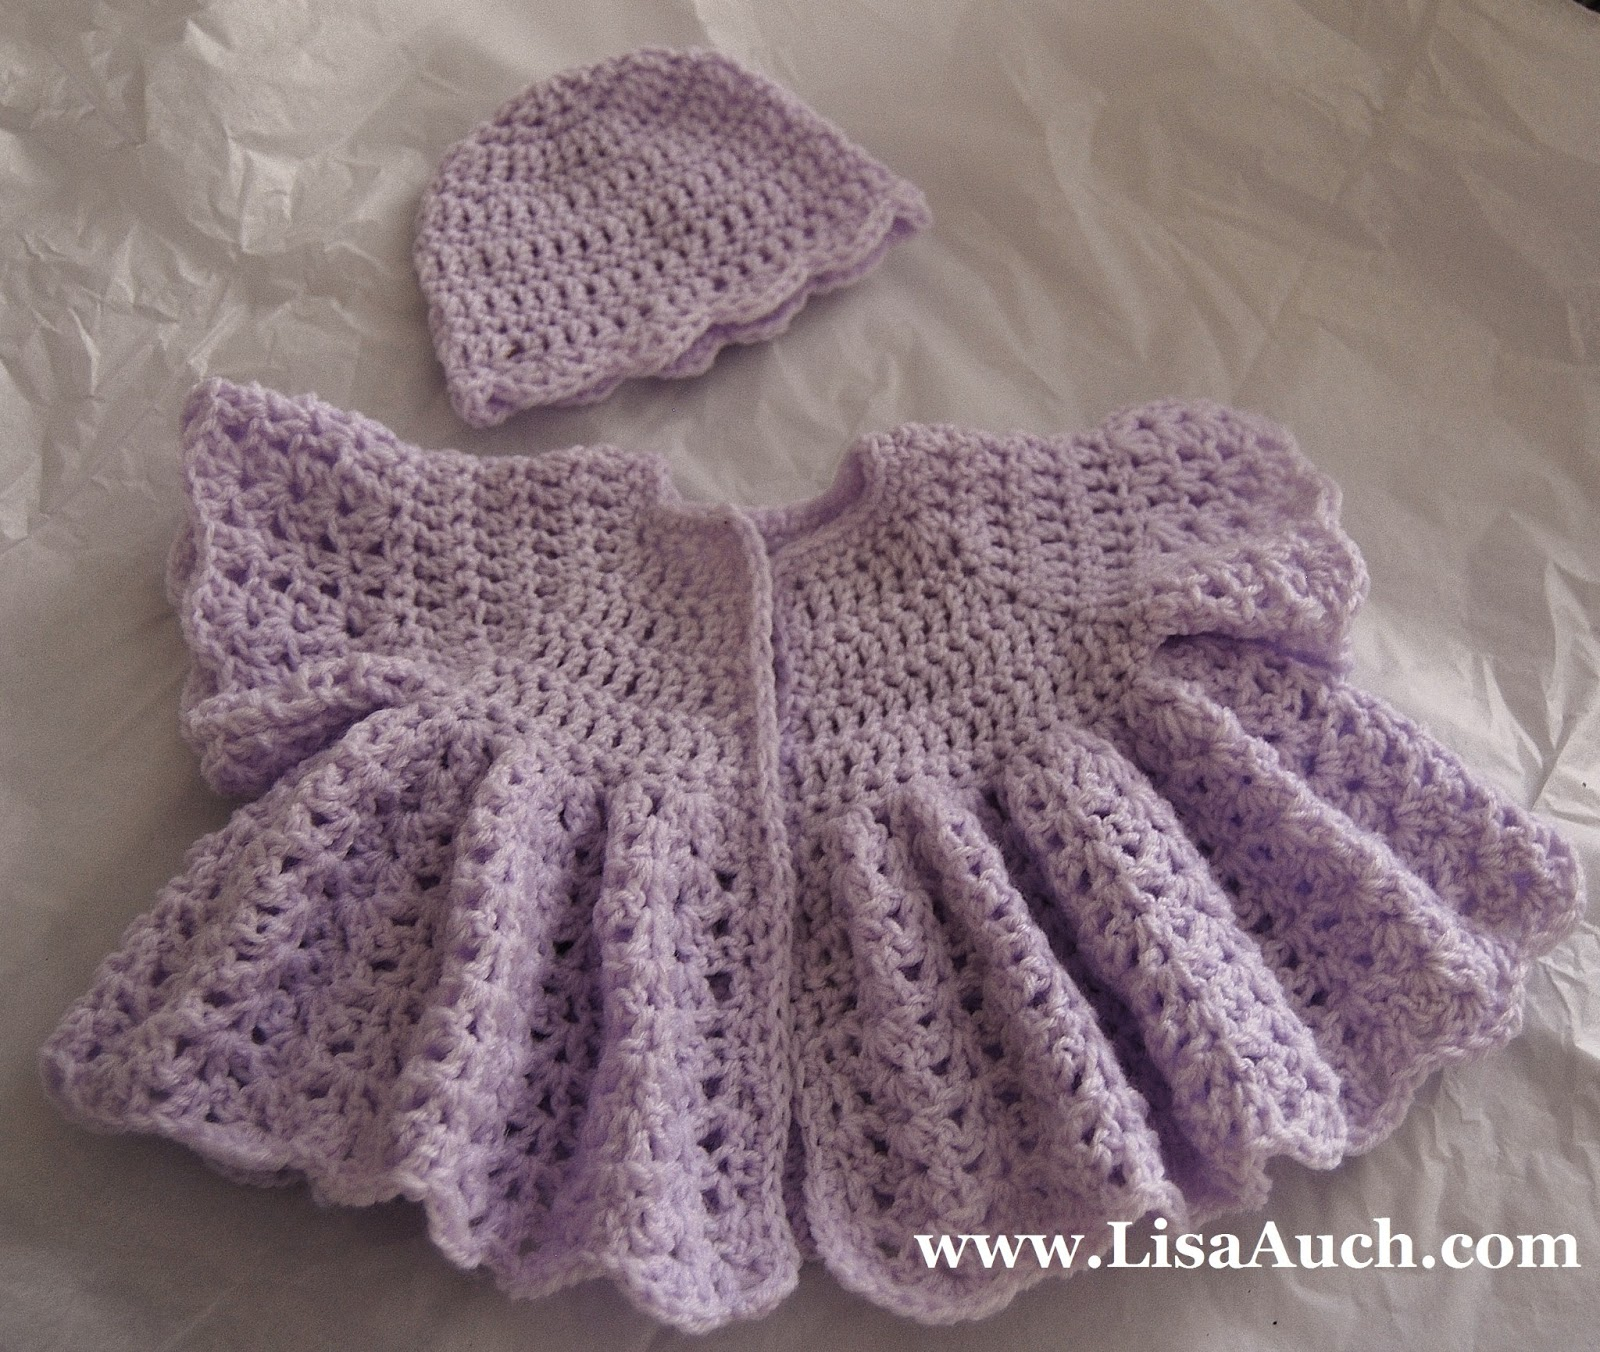 Crochet Baby Jacket Pattern : Free Crochet Toddler Sweater Patterns images